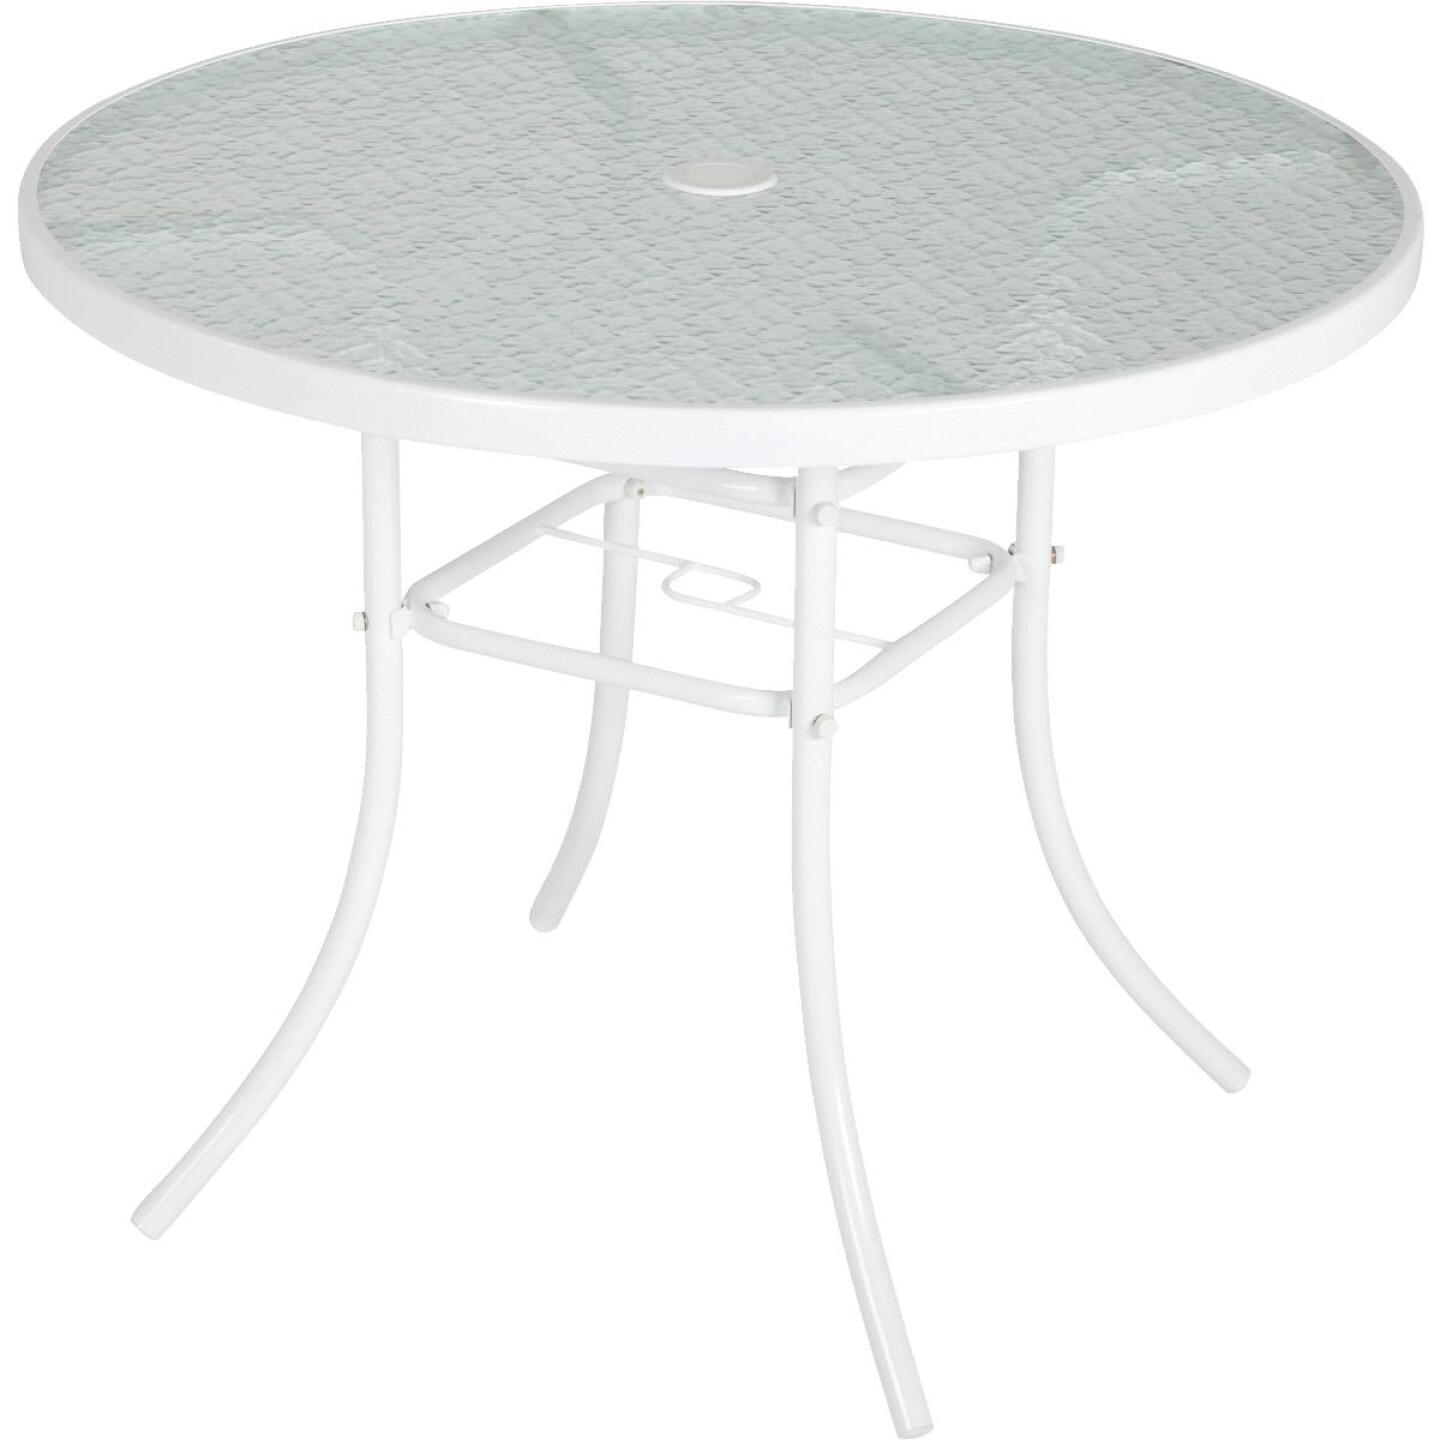 Outdoor Expressions 35 In. Round White Steel Table Image 1